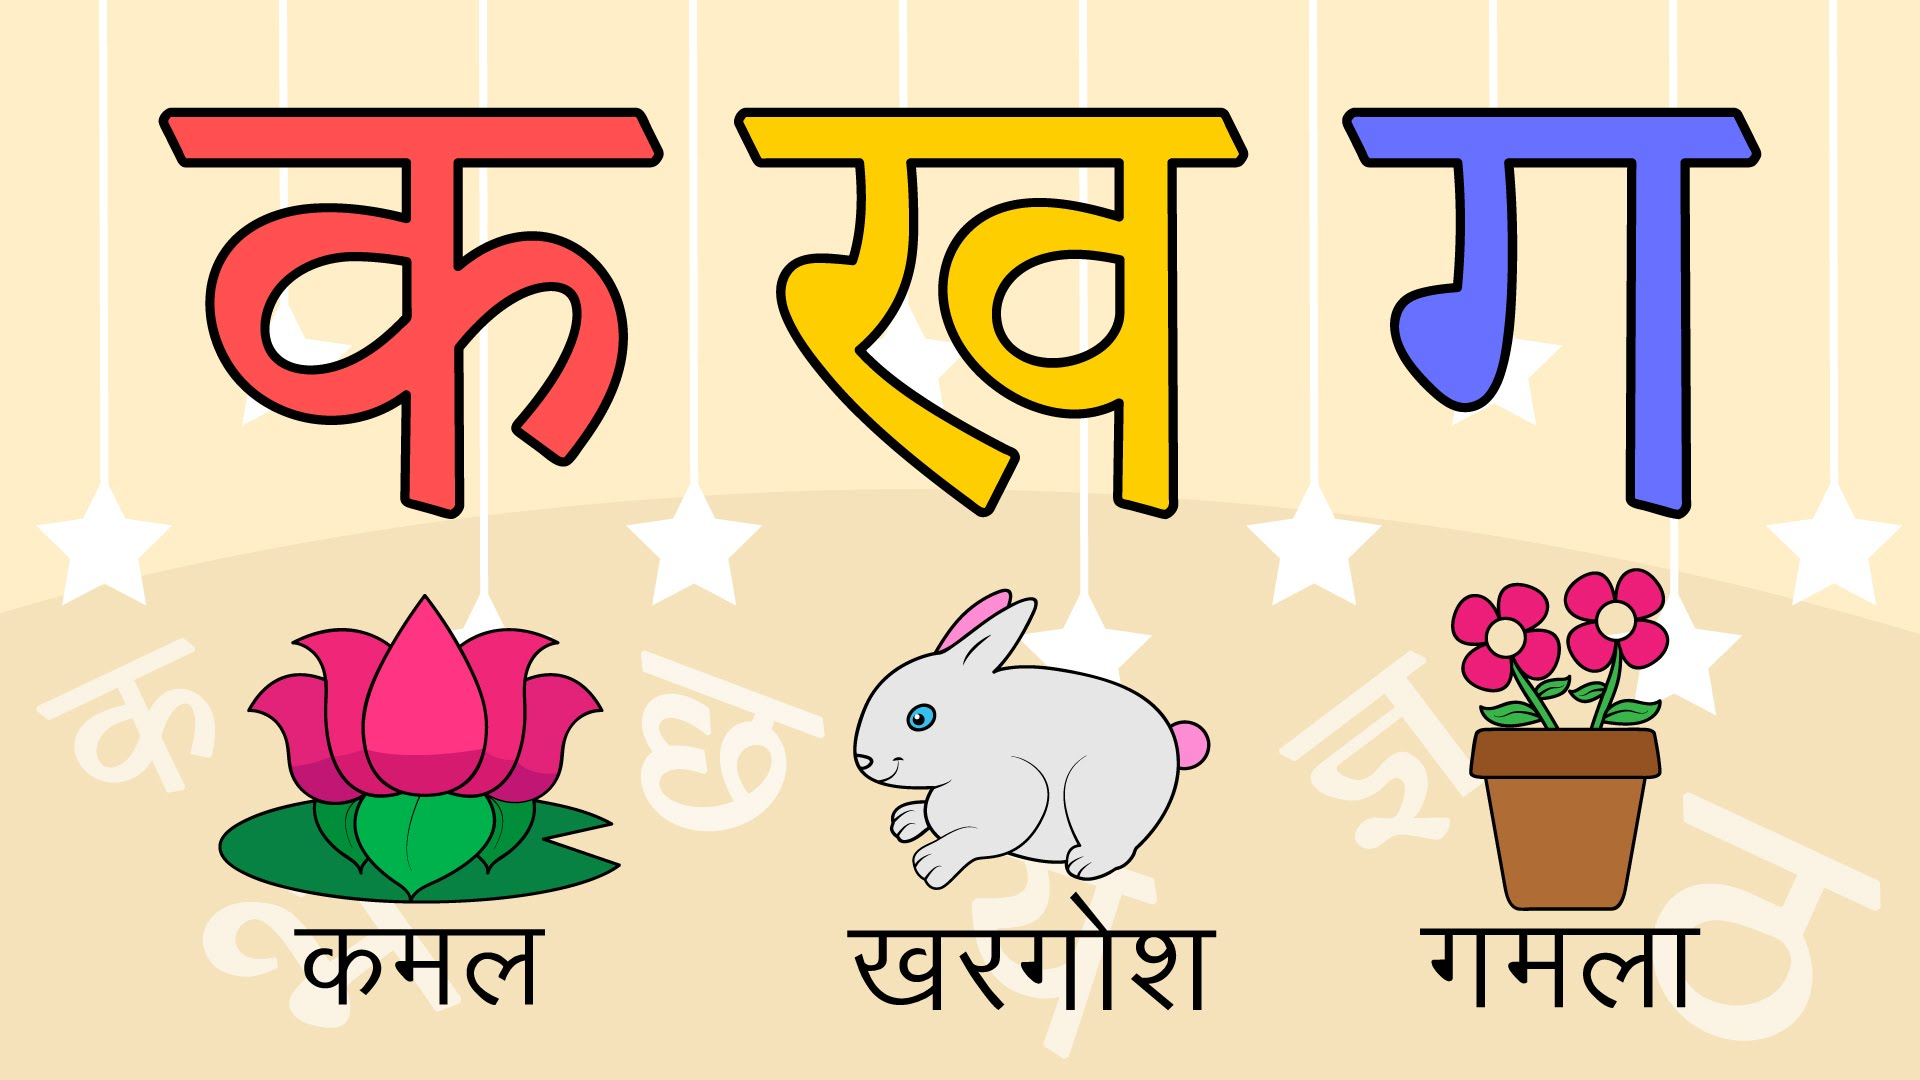 Advertisement clipart hindi 36 Hindi letters 36 pictures